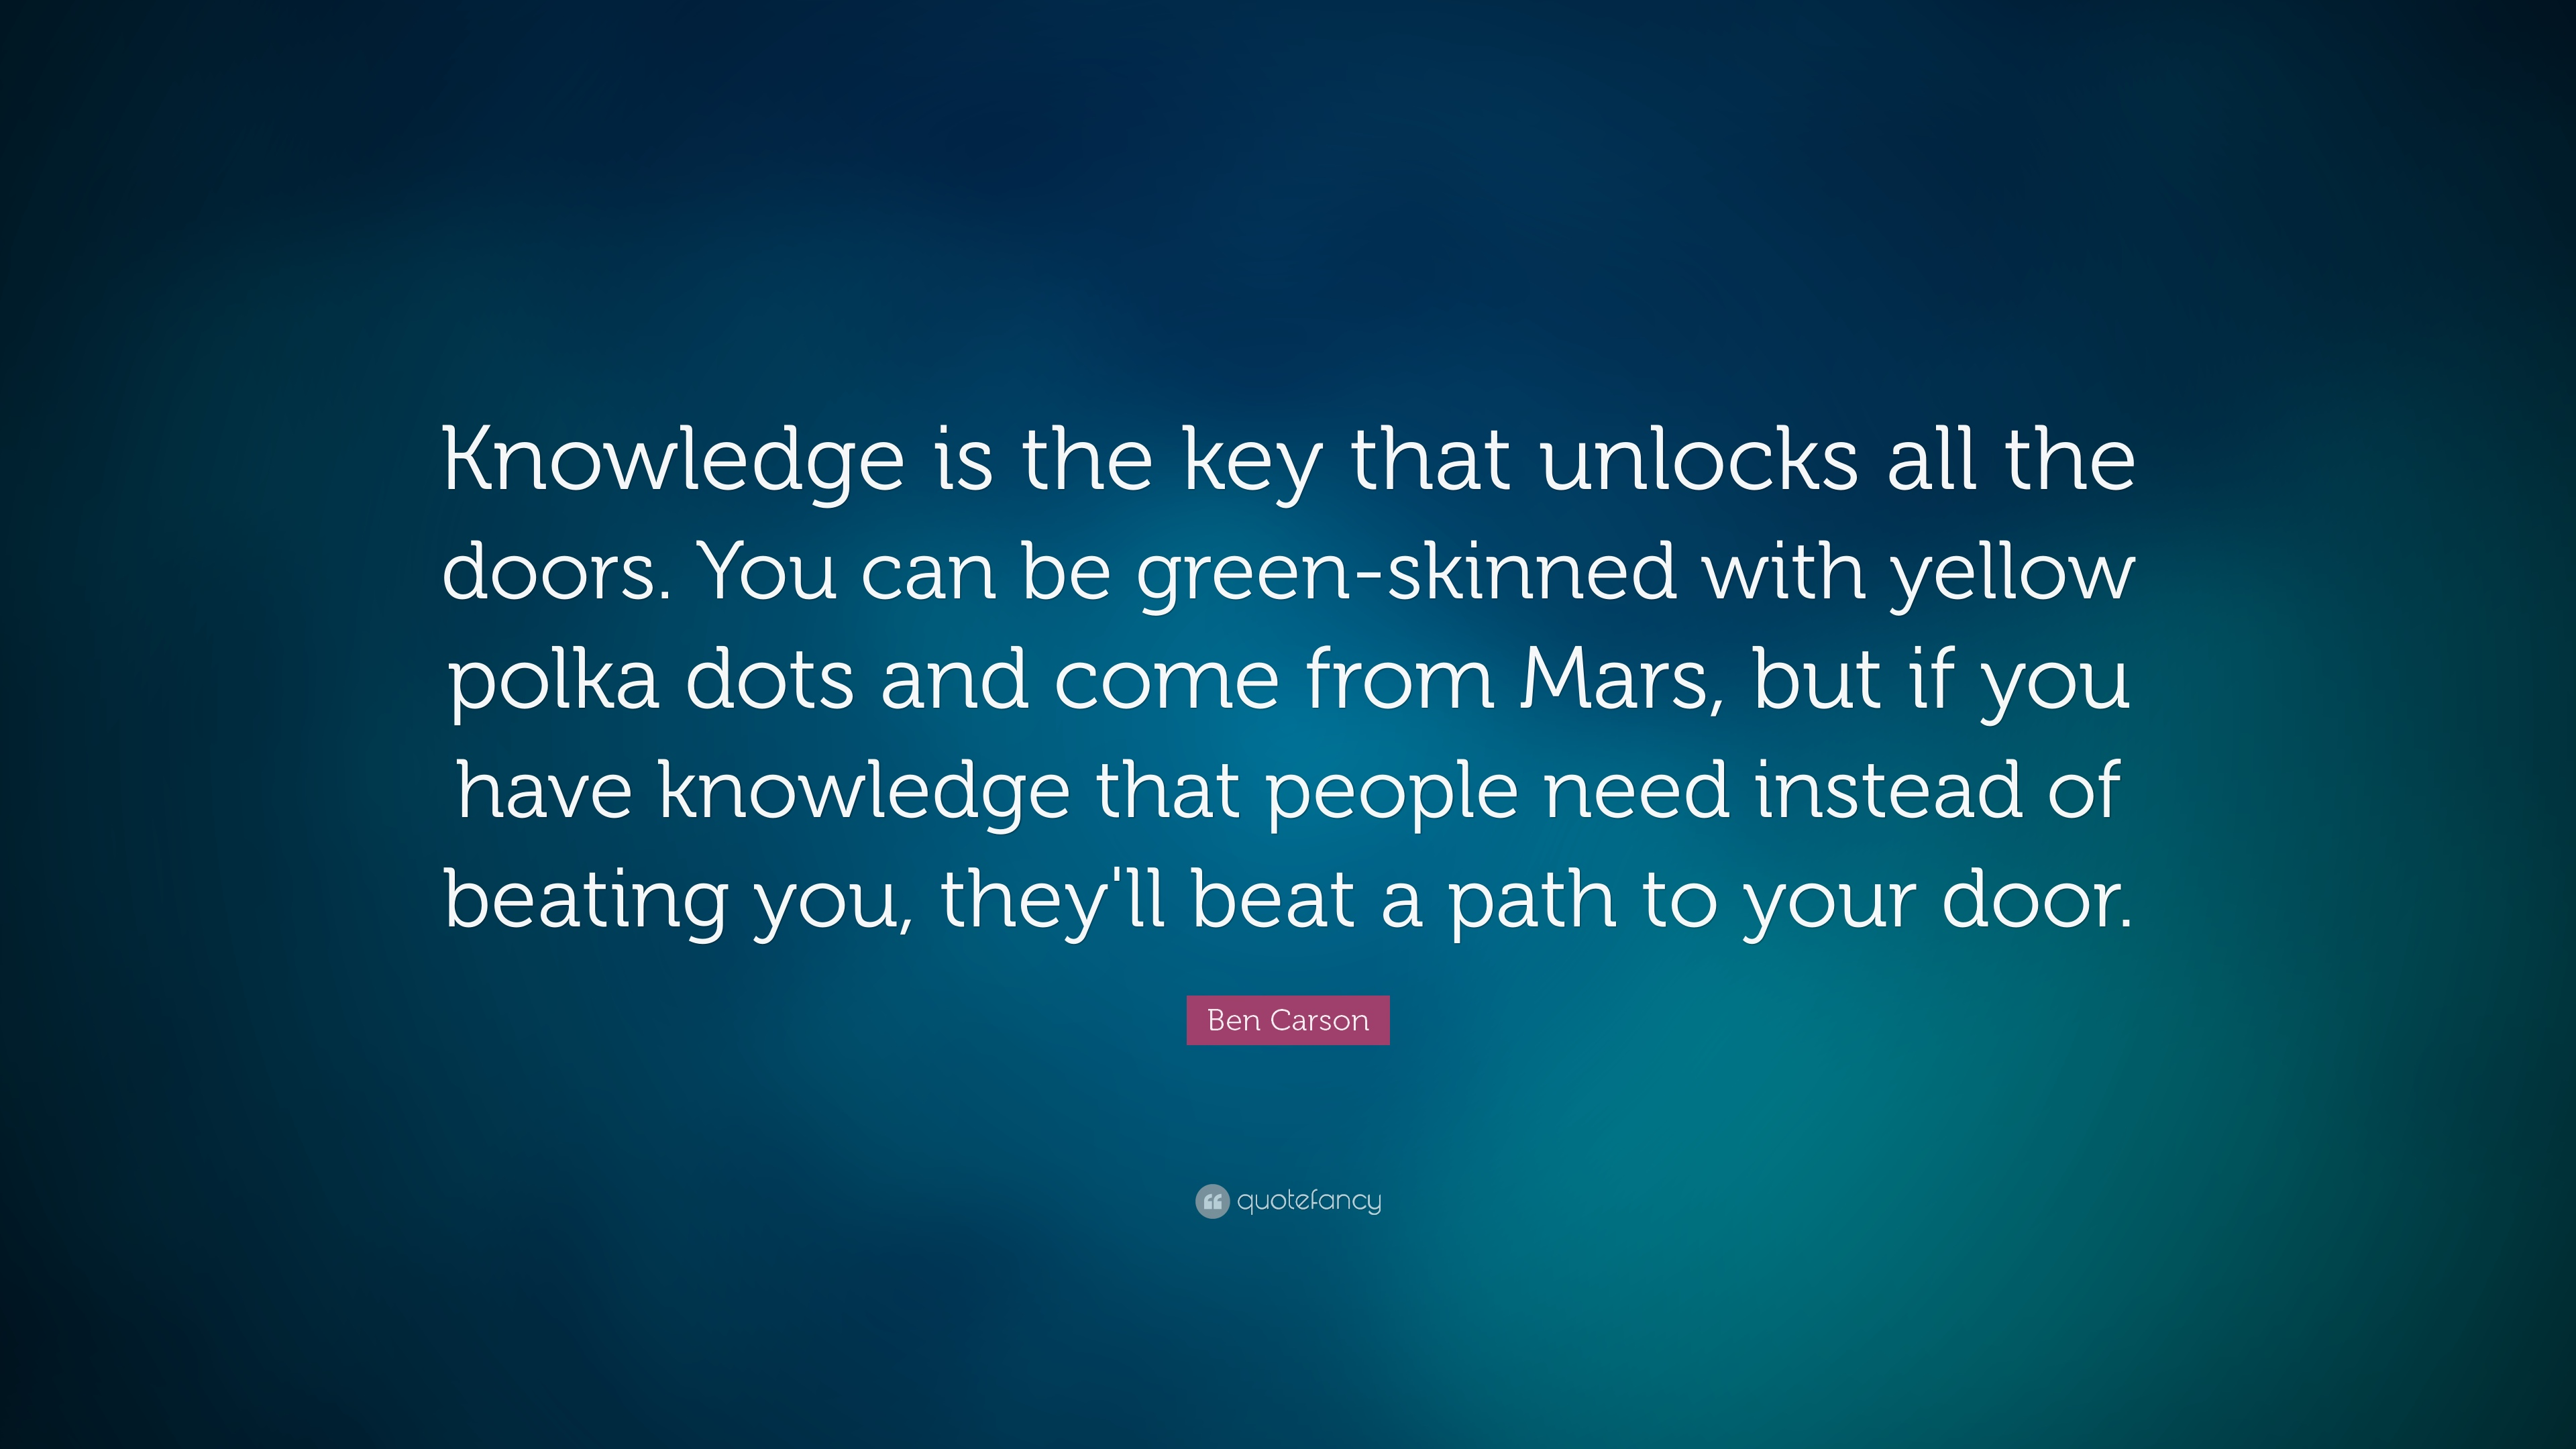 ben carson quote knowledge is the key that unlocks all the doors ben carson quote knowledge is the key that unlocks all the doors you